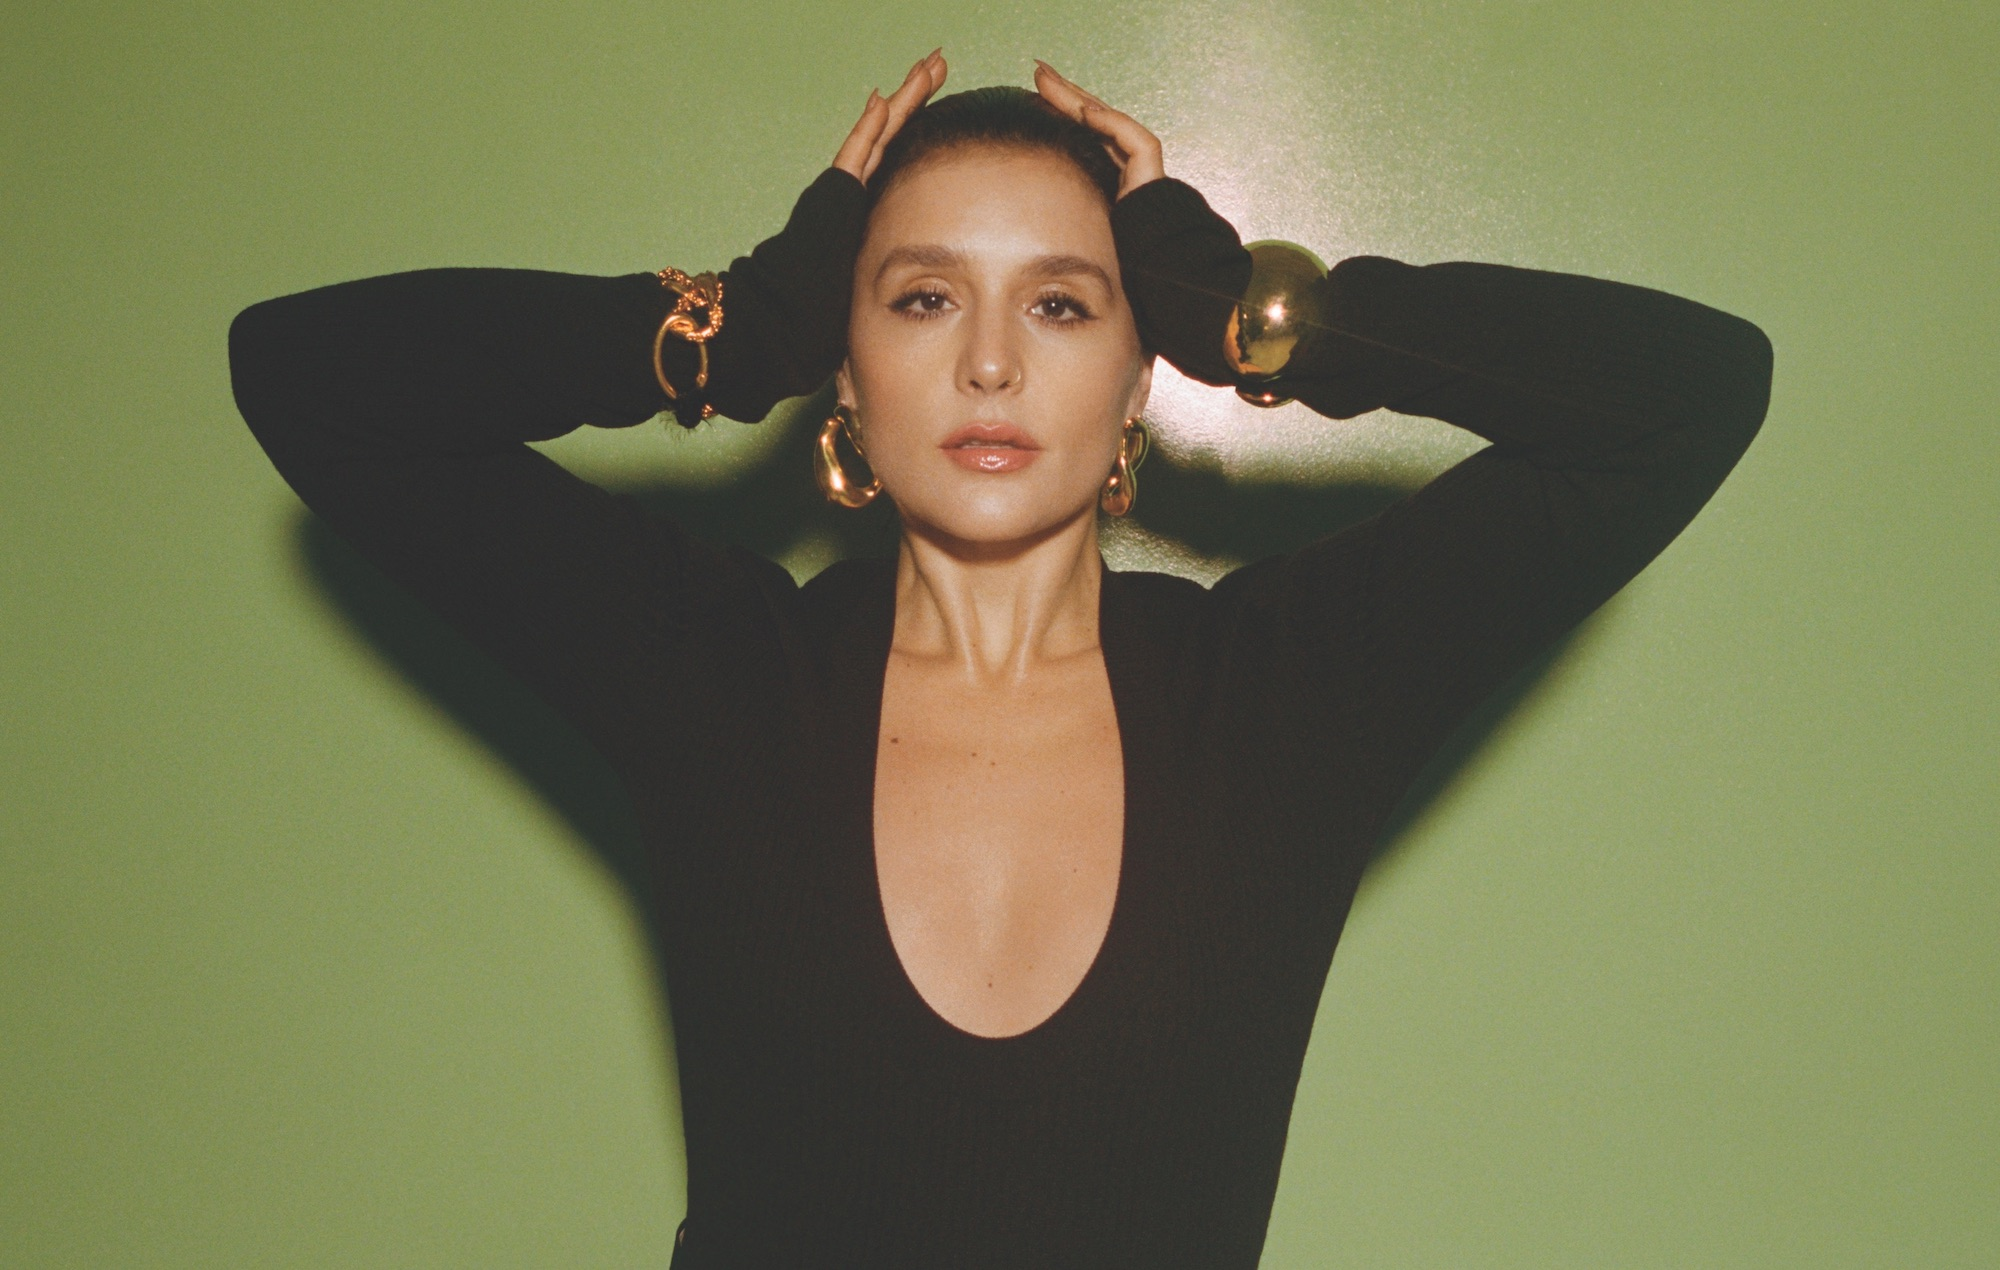 Jessie Ware and Kylie Minogue are working on new music together